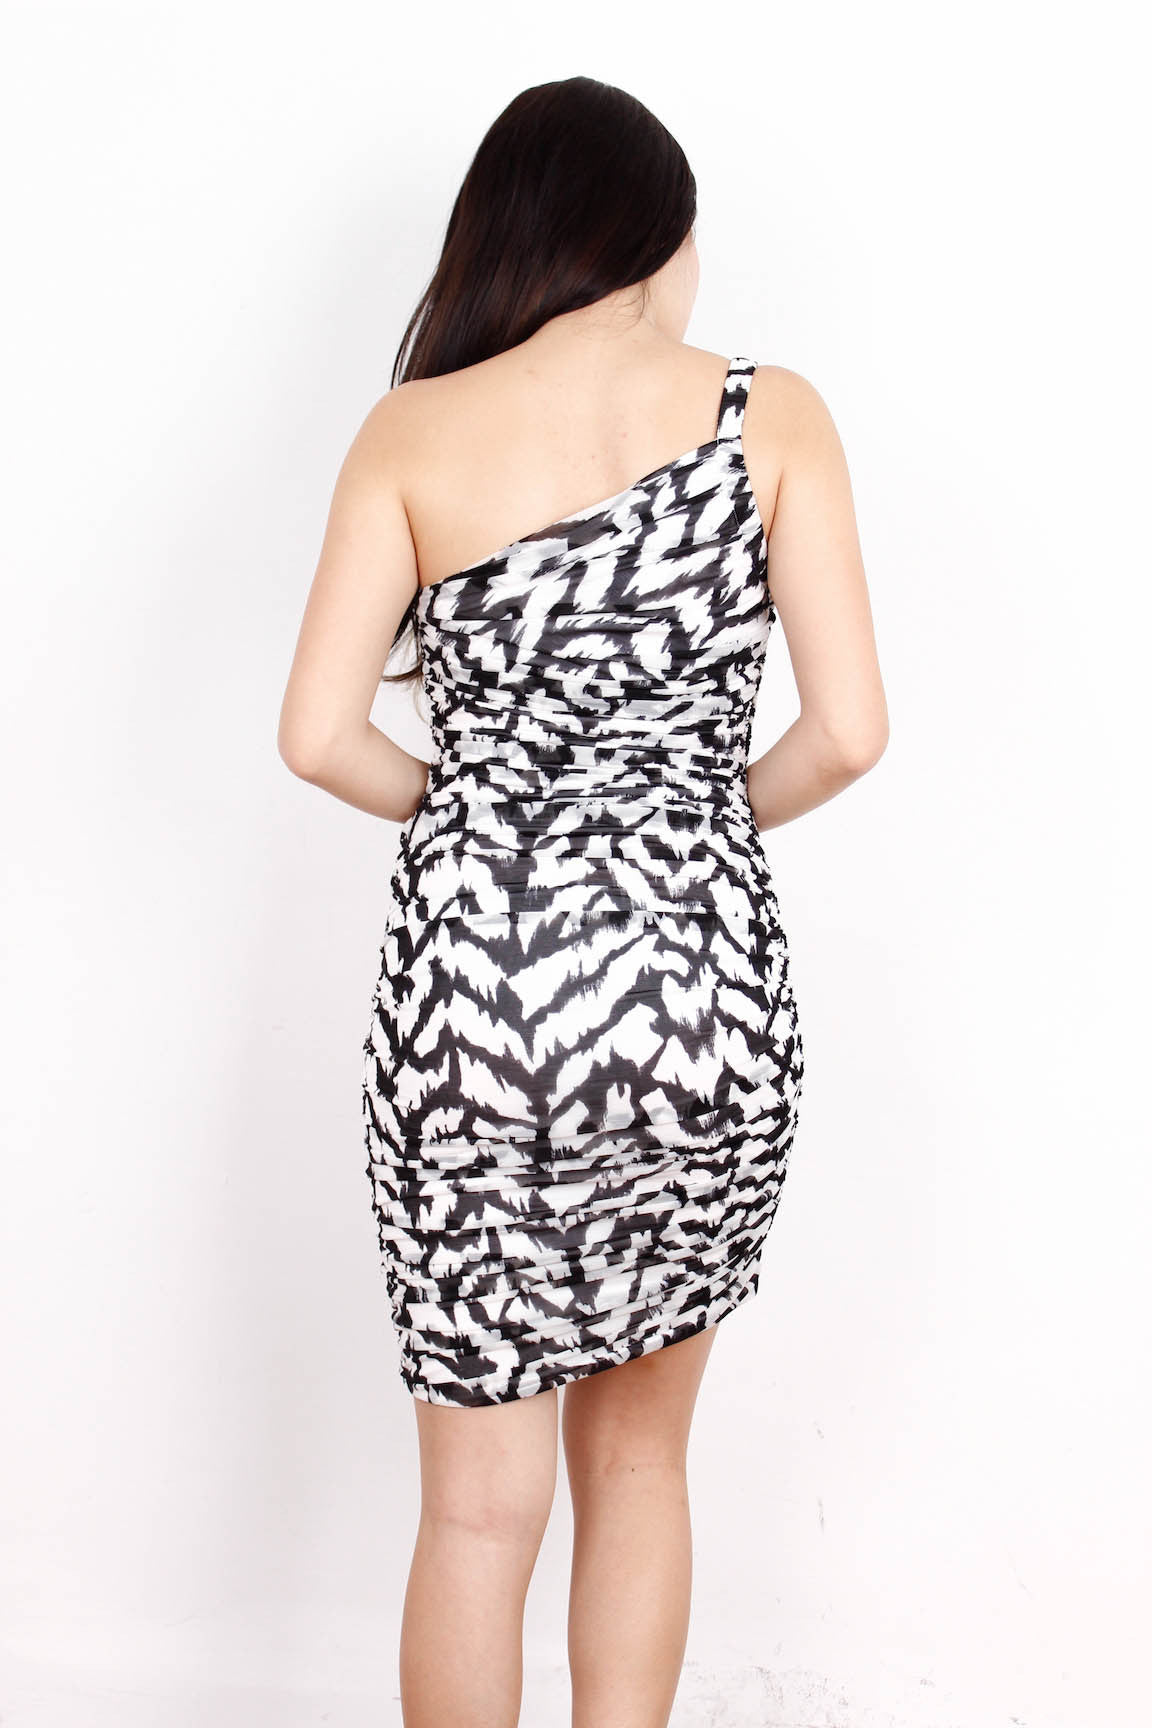 [A|X ARMANI EXCHANGE] Wavy Monochrome Dress